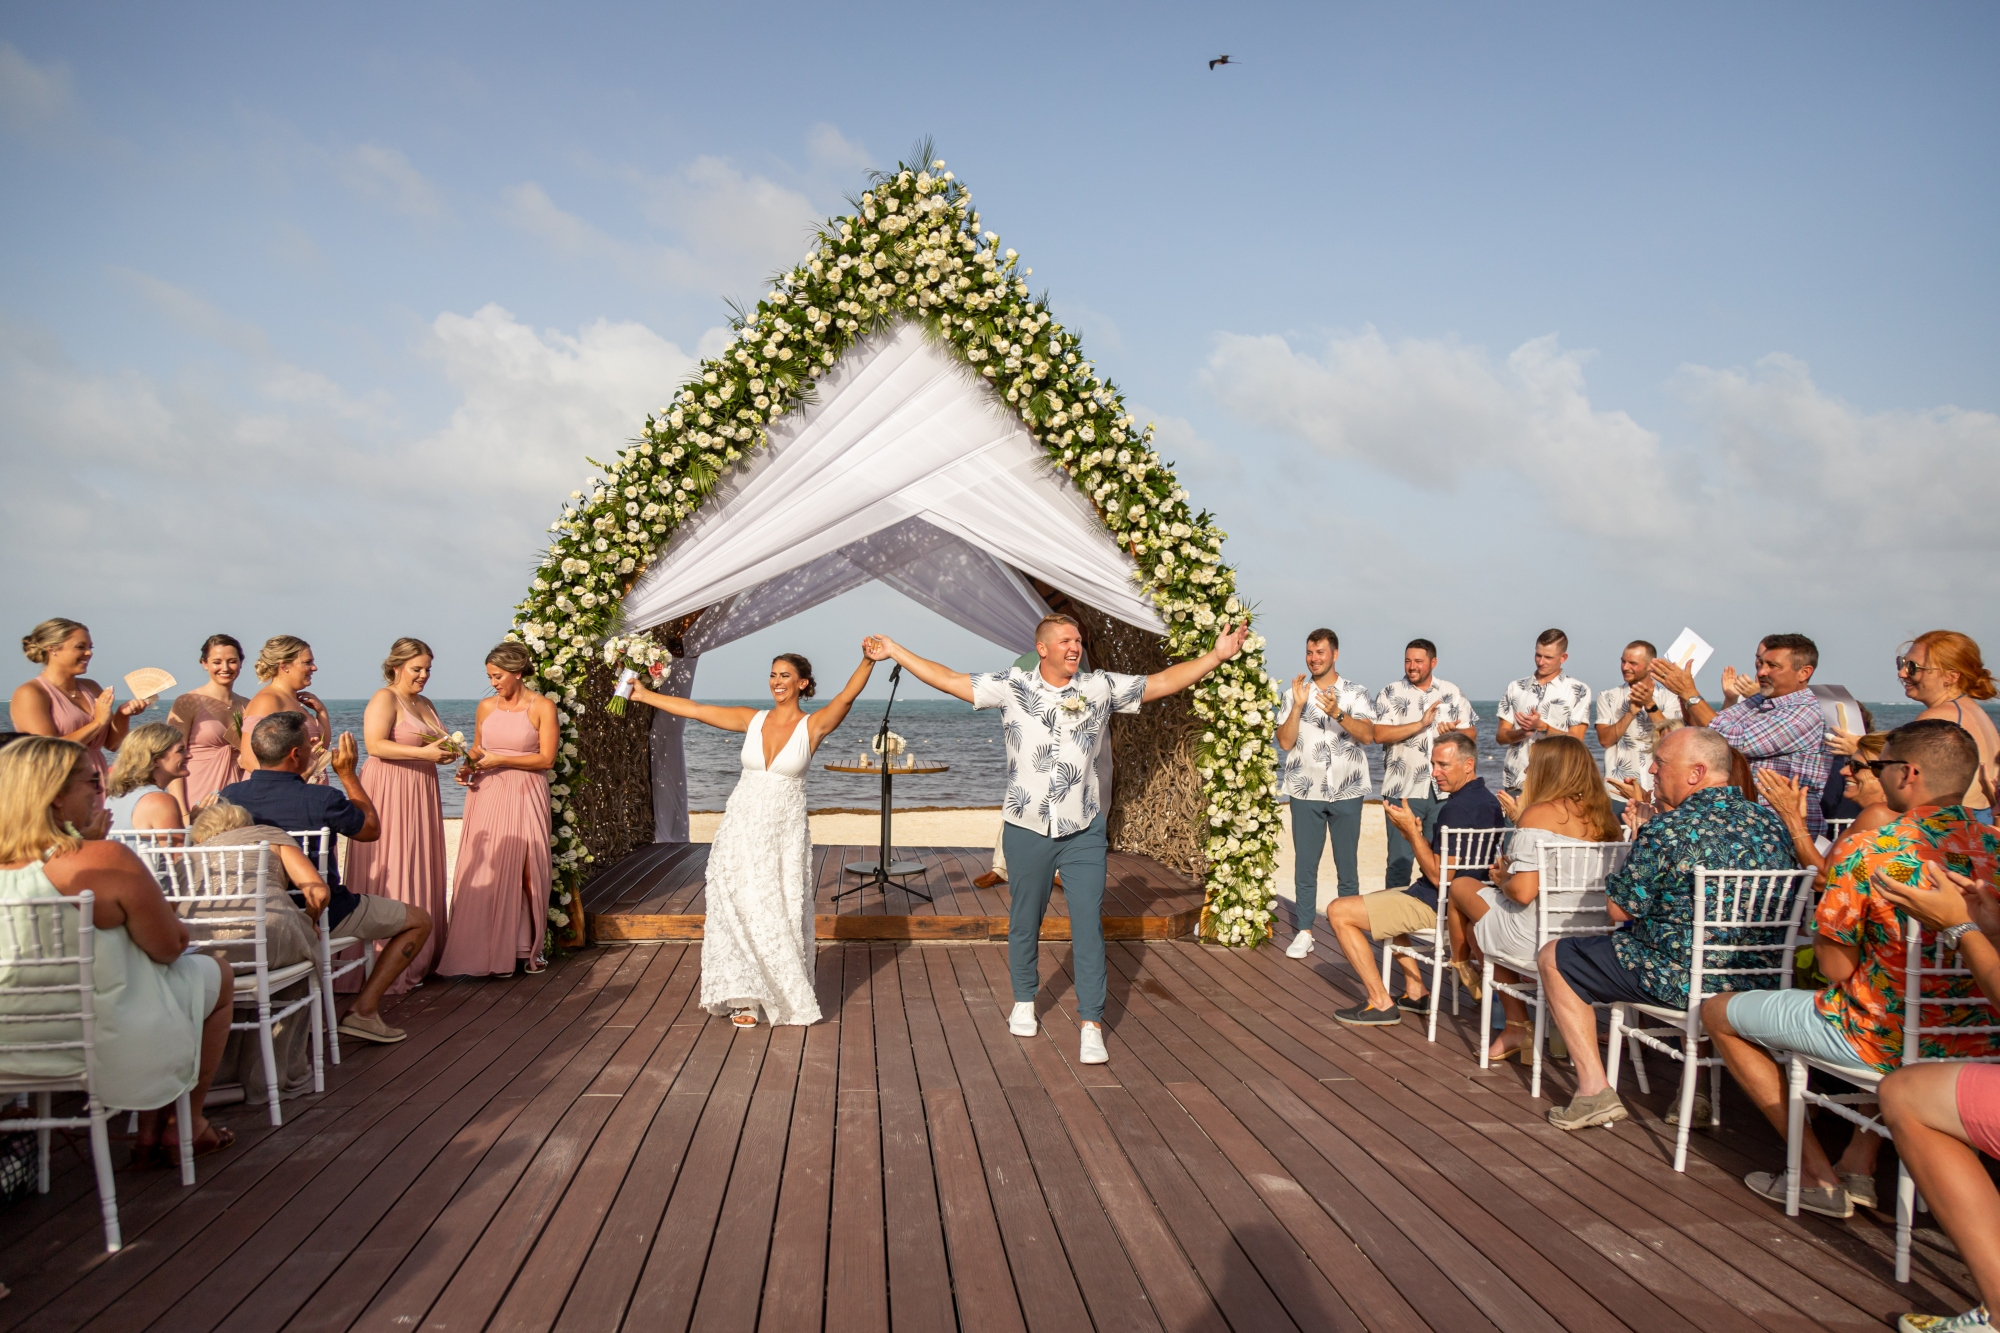 Bride and groom celebrating their marriage at destination wedding